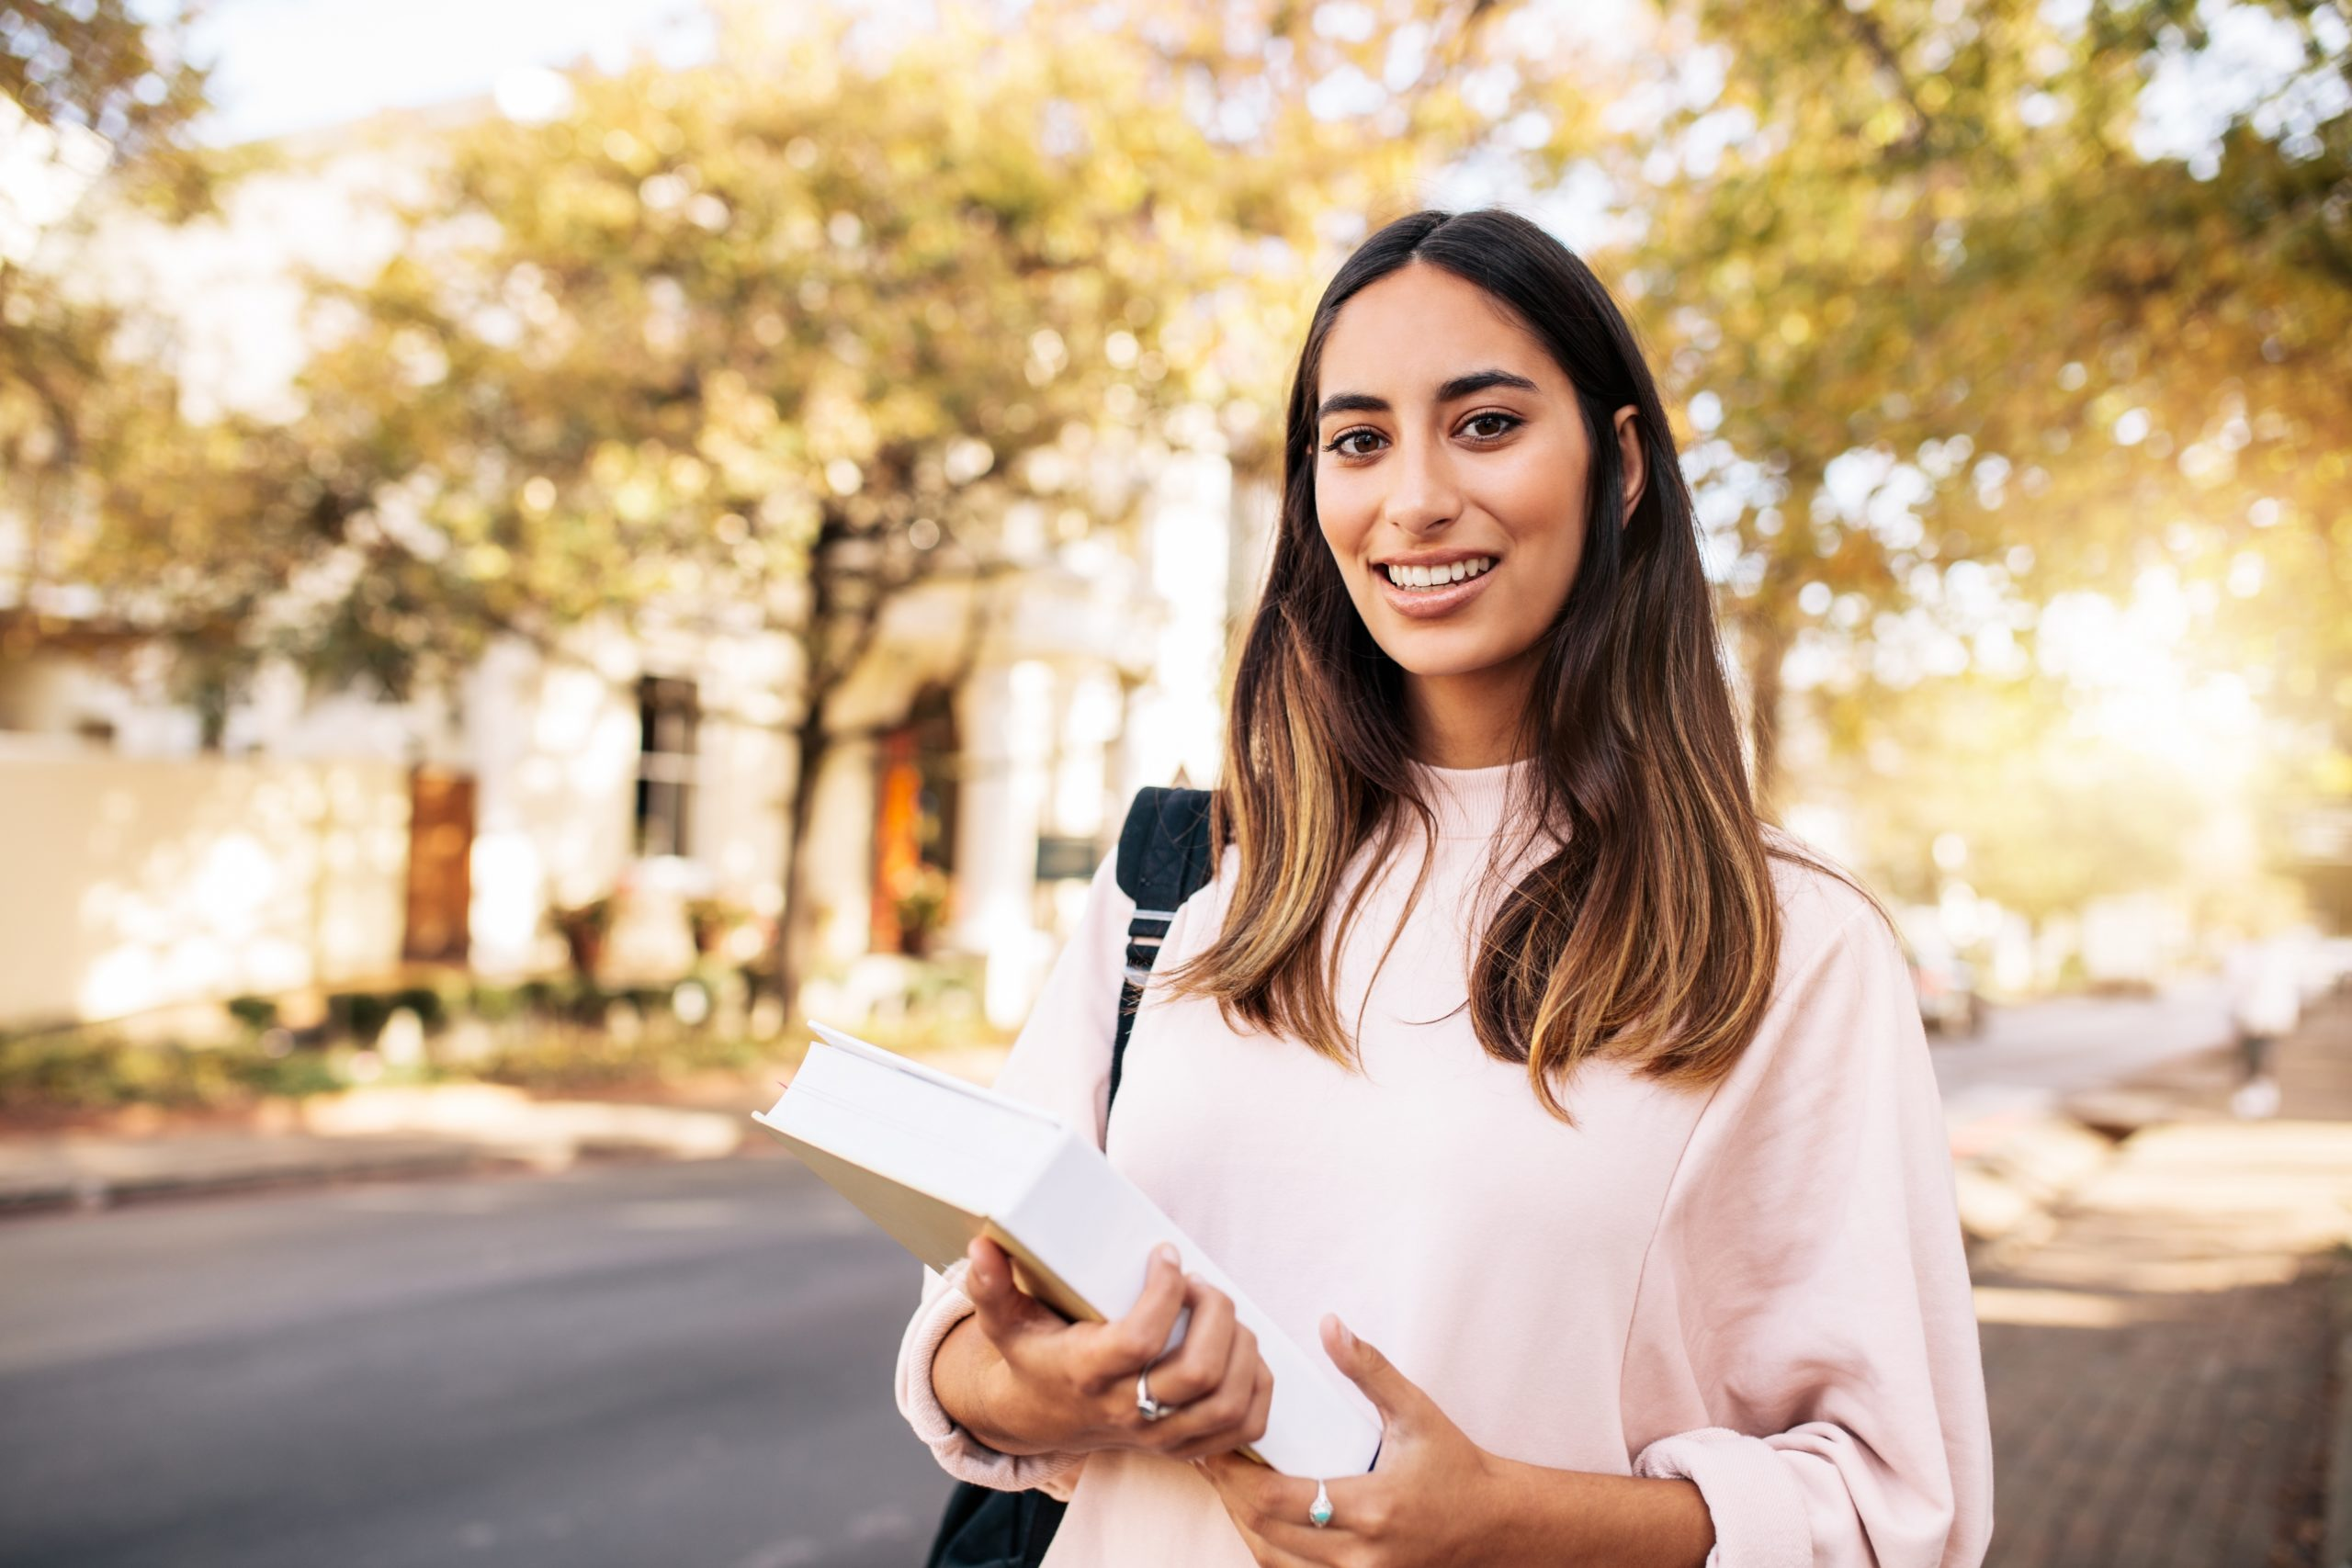 Healthy woman outside smiling